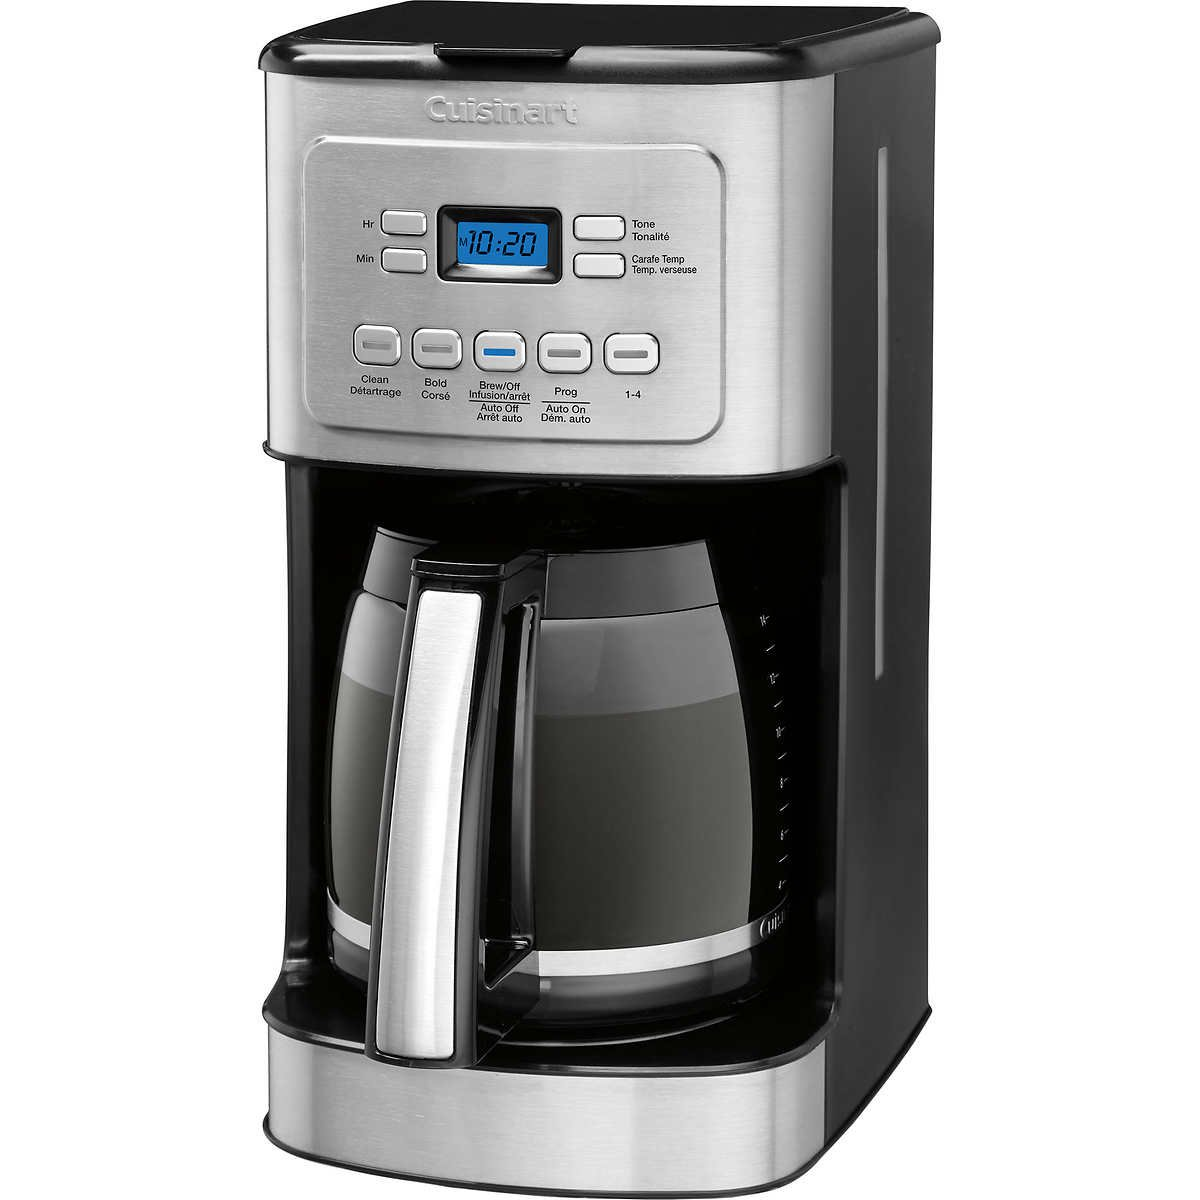 Cuisinart 14-Cup Stainless Steel Coffeemaker Machine Brew Automatic ,Black, Grey ,New